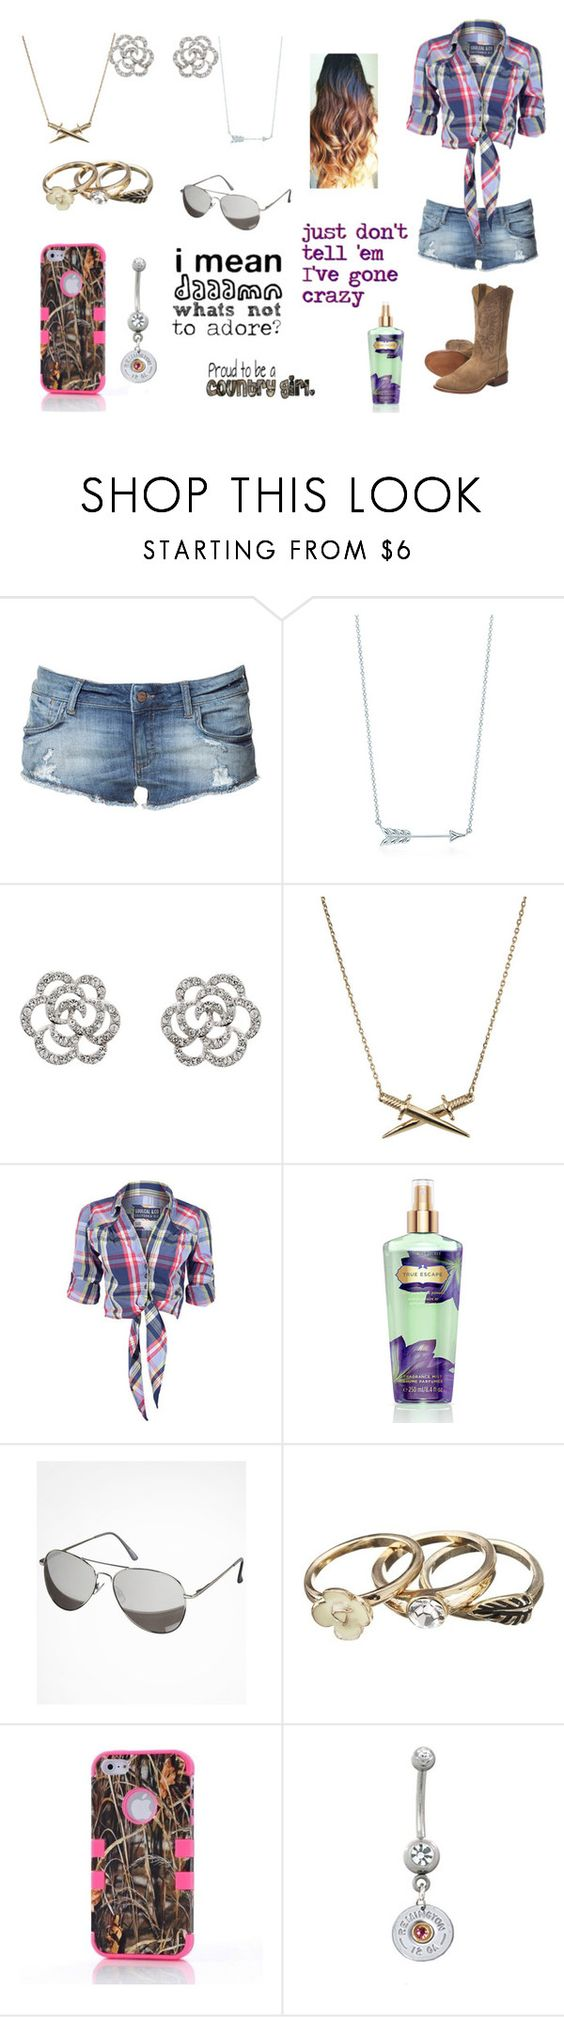 """""""Untitled #603"""" by taylor-loomis ❤ liked on Polyvore featuring Zara, Tiffany & Co., Finesse, Wildfox, Soul Cal, Victoria's Secret and Remington"""